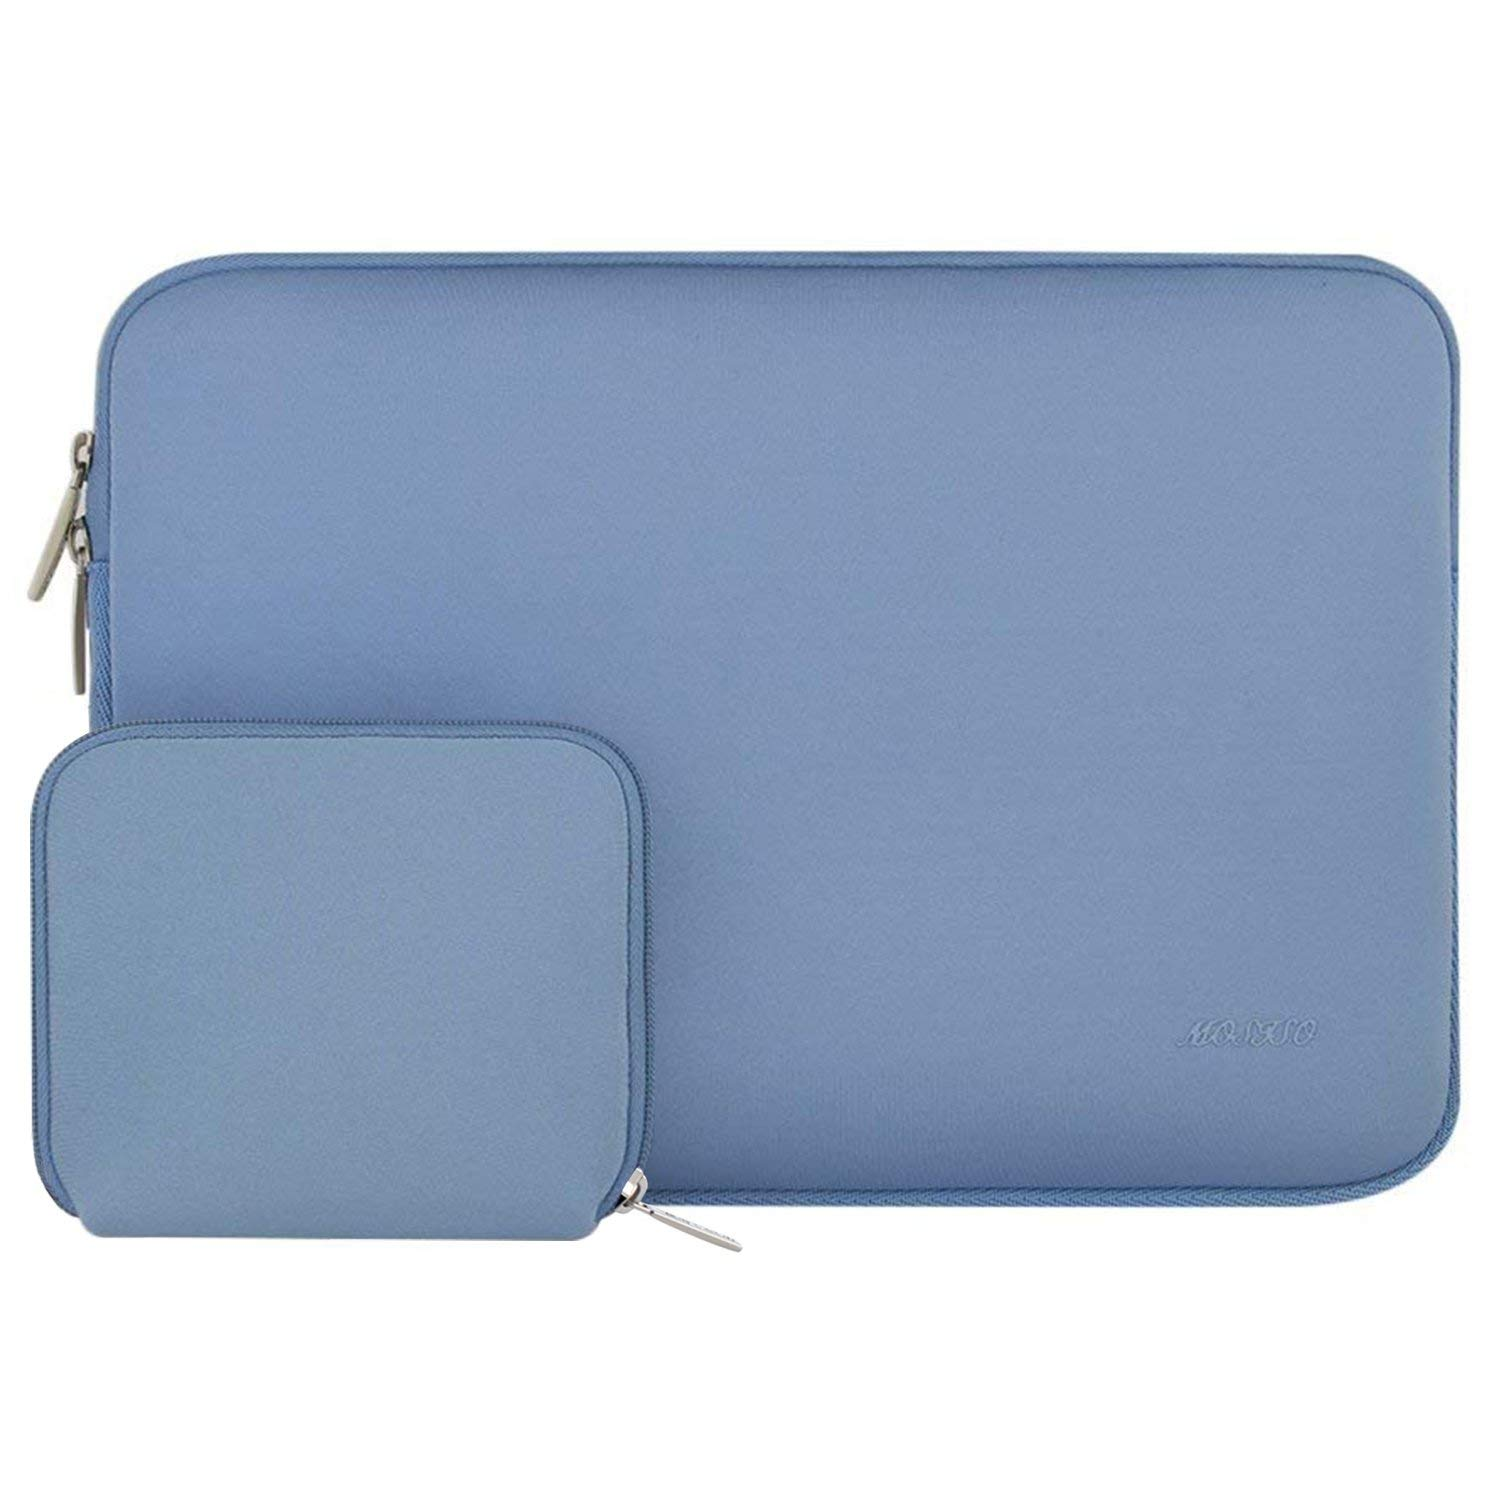 Water-Repellent Laptop Case - I love this laptop case! And it is only $13 for the laptop case, and a charger case! Highly suggest!